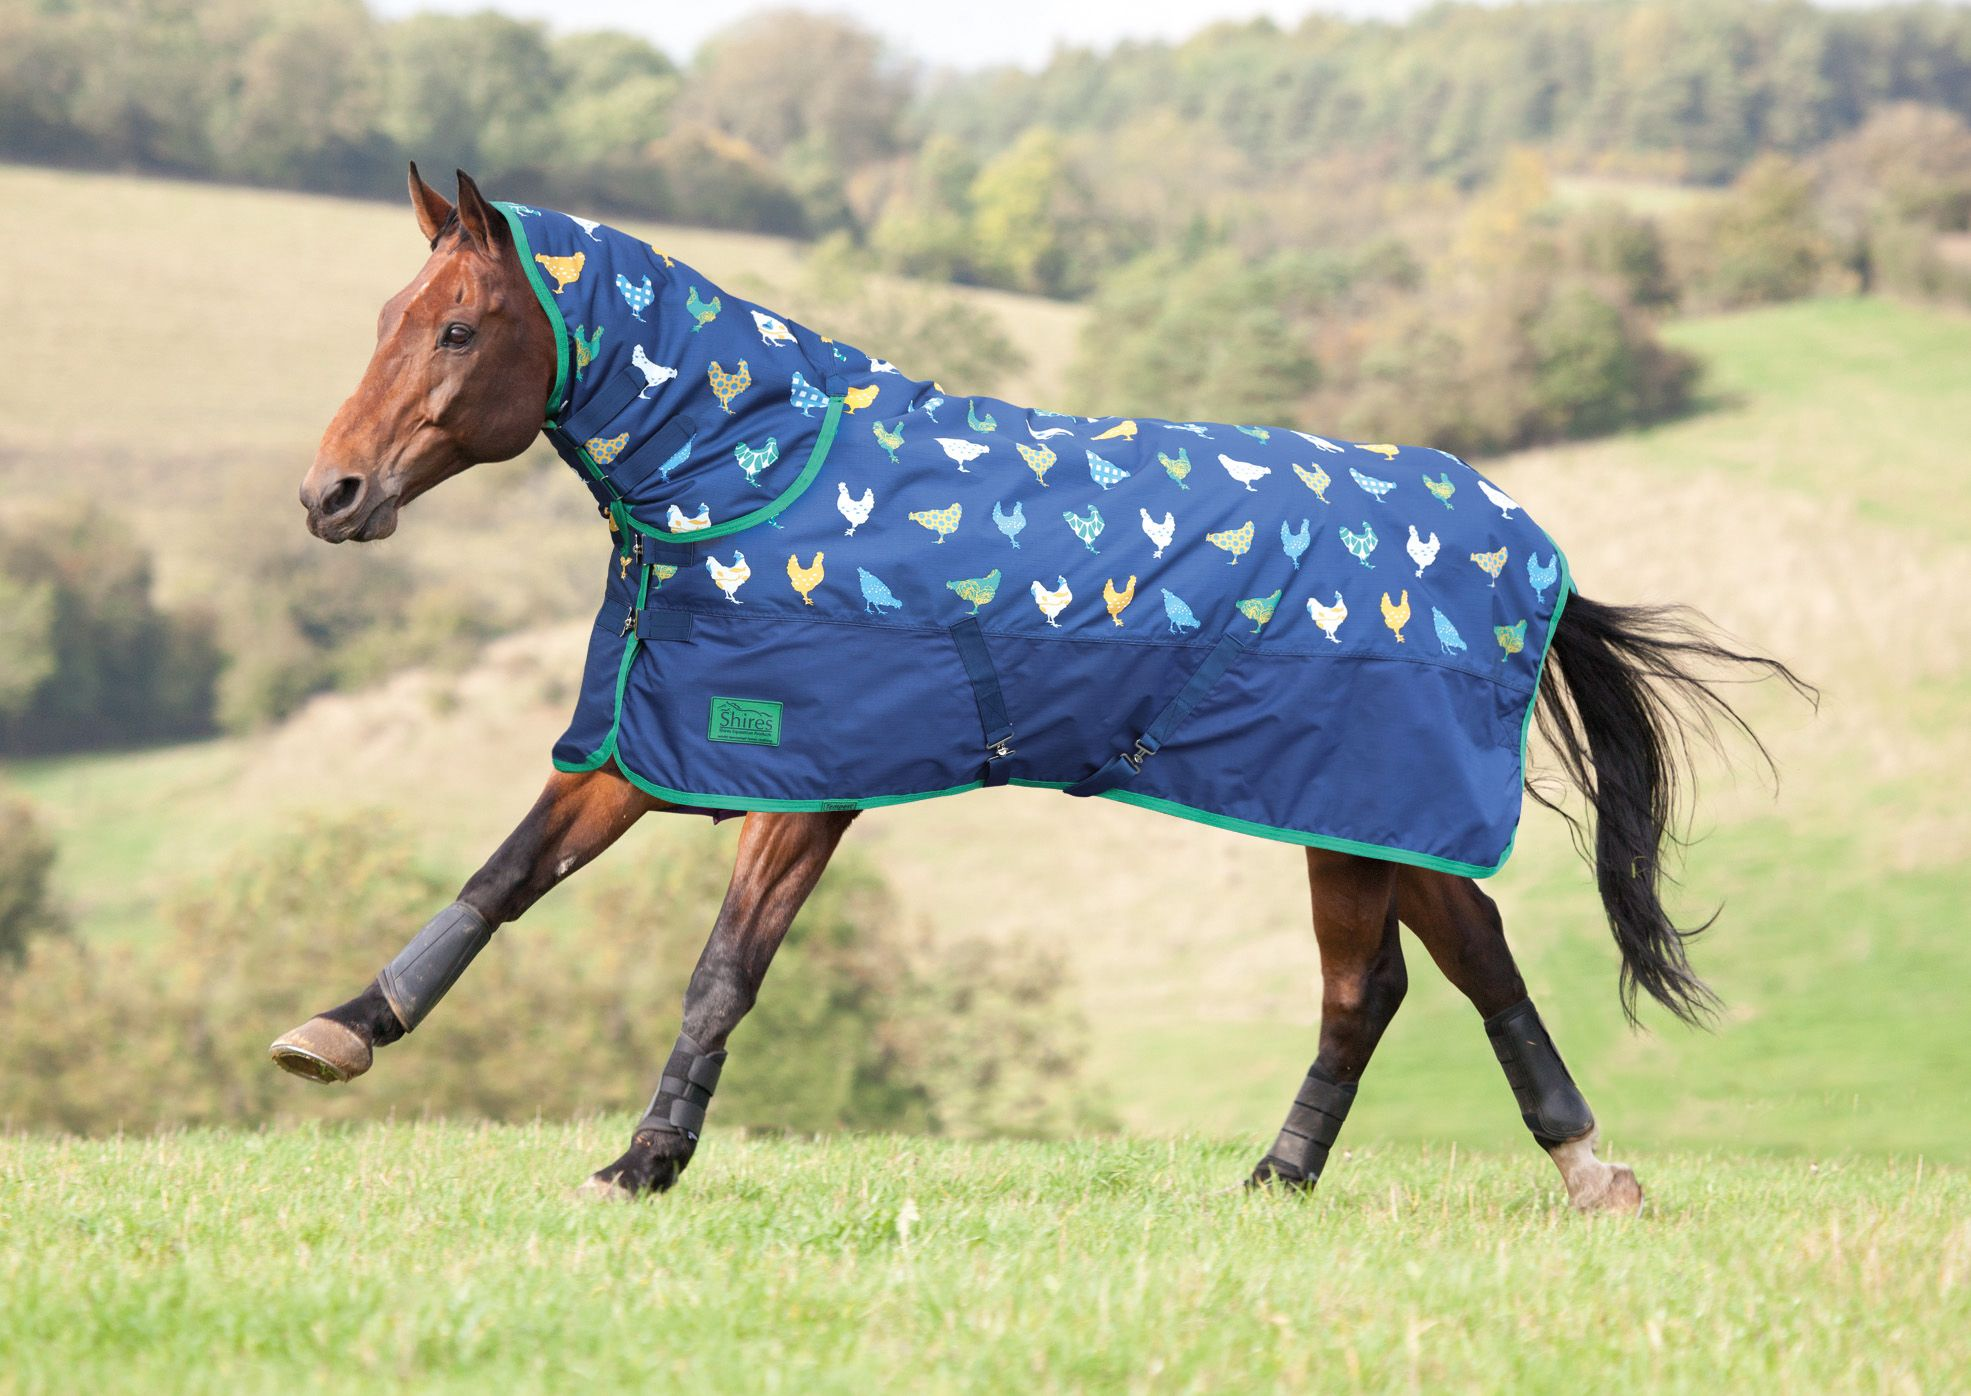 Shires Tempest Original 200g Combo Chicken Print Sizes From 4ft 7ft Retailing At 59 99 Zoarsark Shires Rug Horse Rugs Turnout Rug Horses